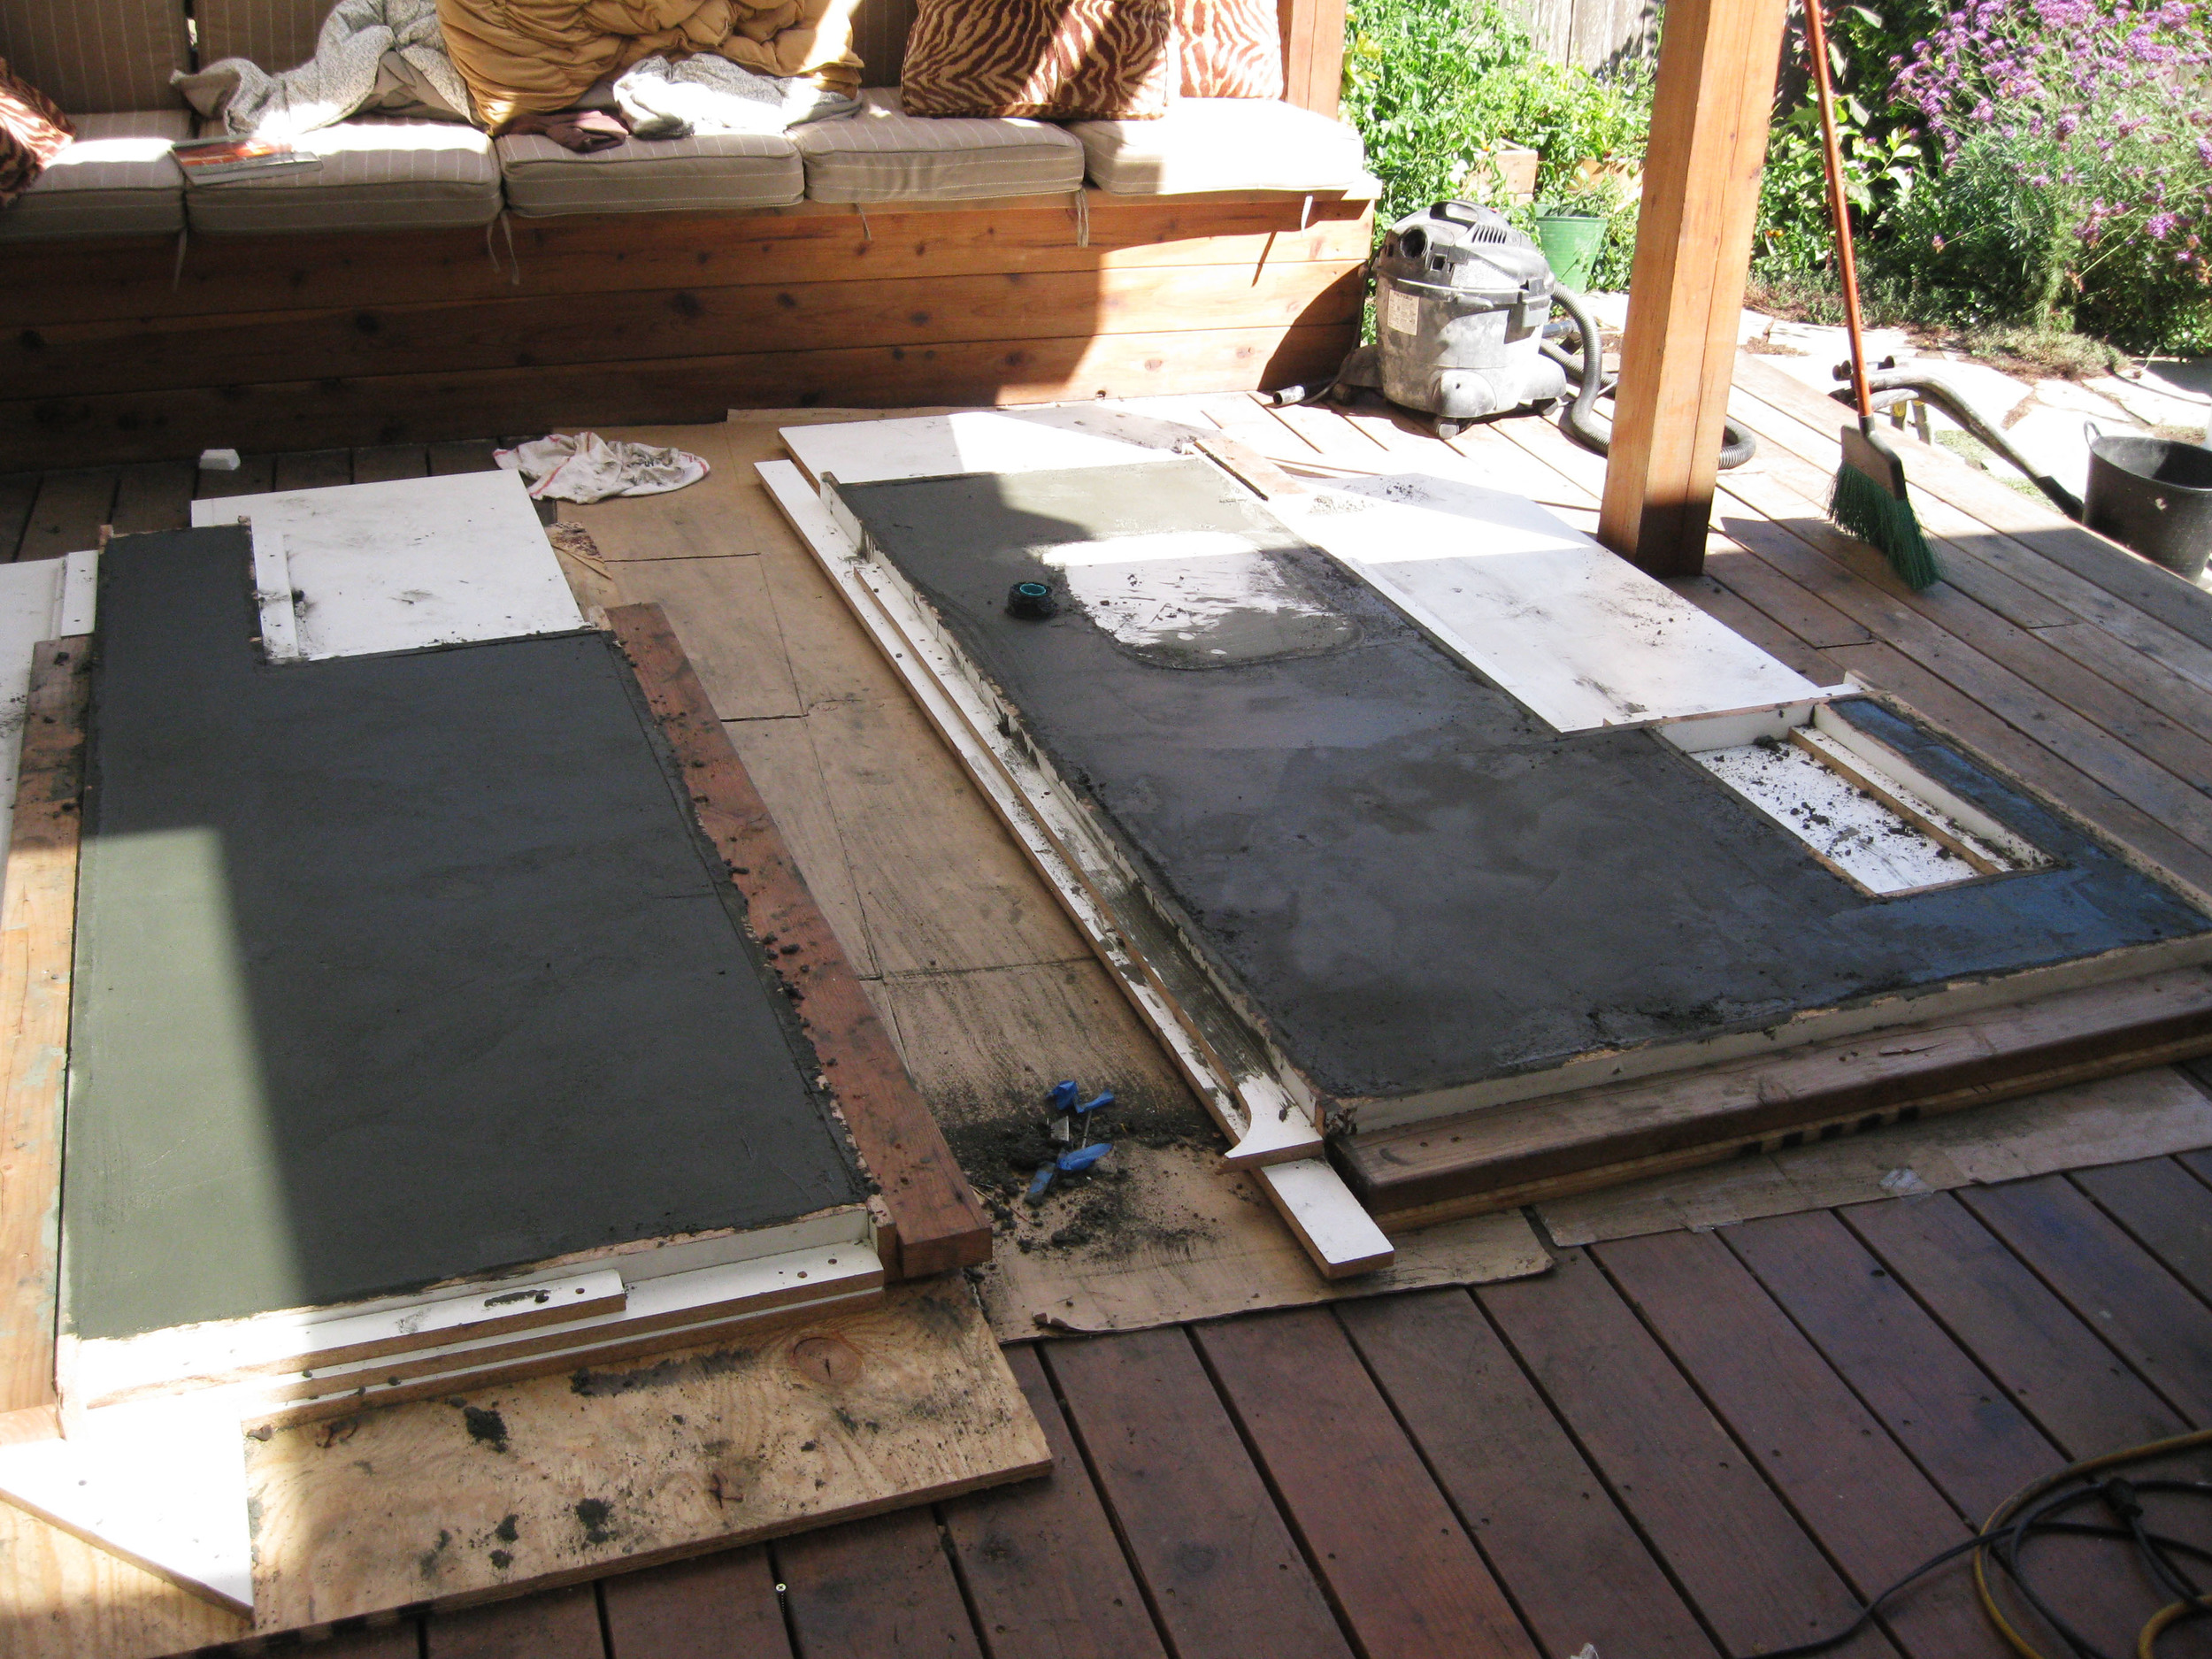 Shown here are both molds with the poured concrete curing.